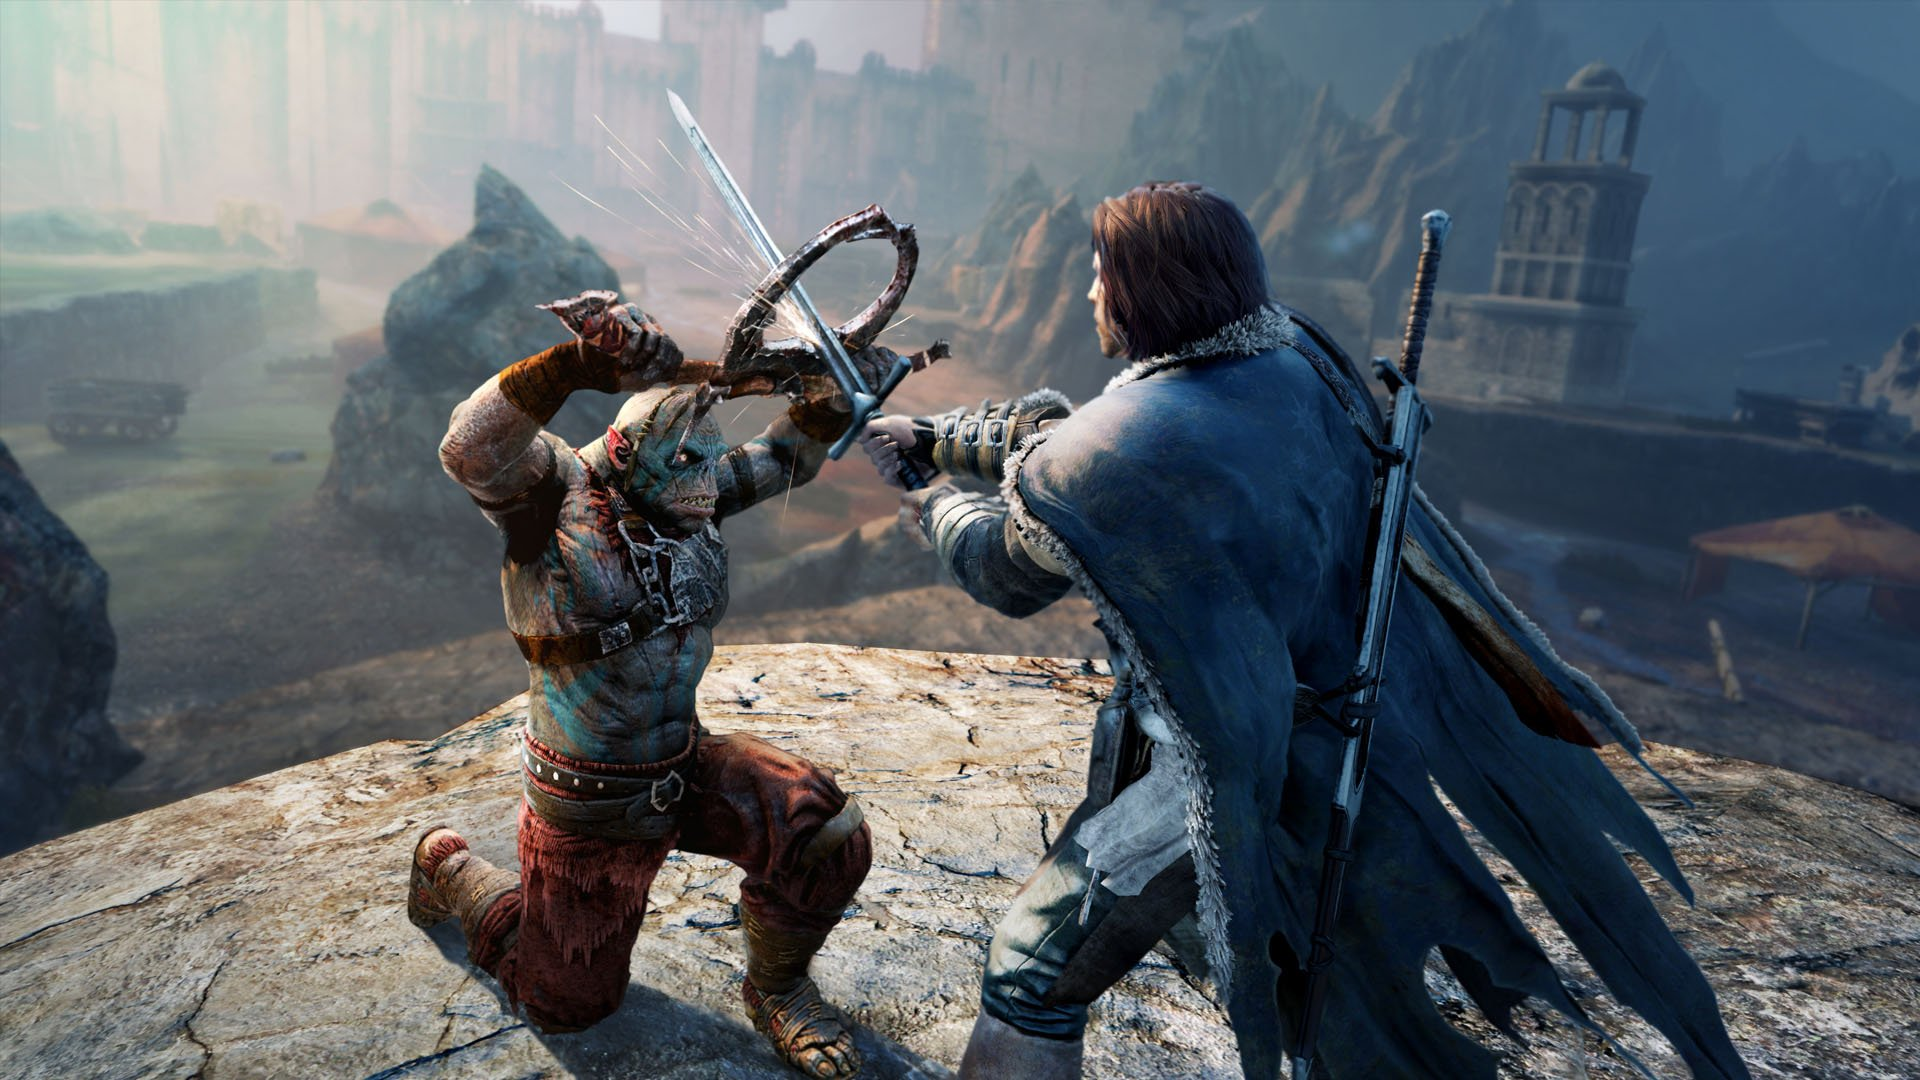 shadow of mordor full movie download in hindi 300mb